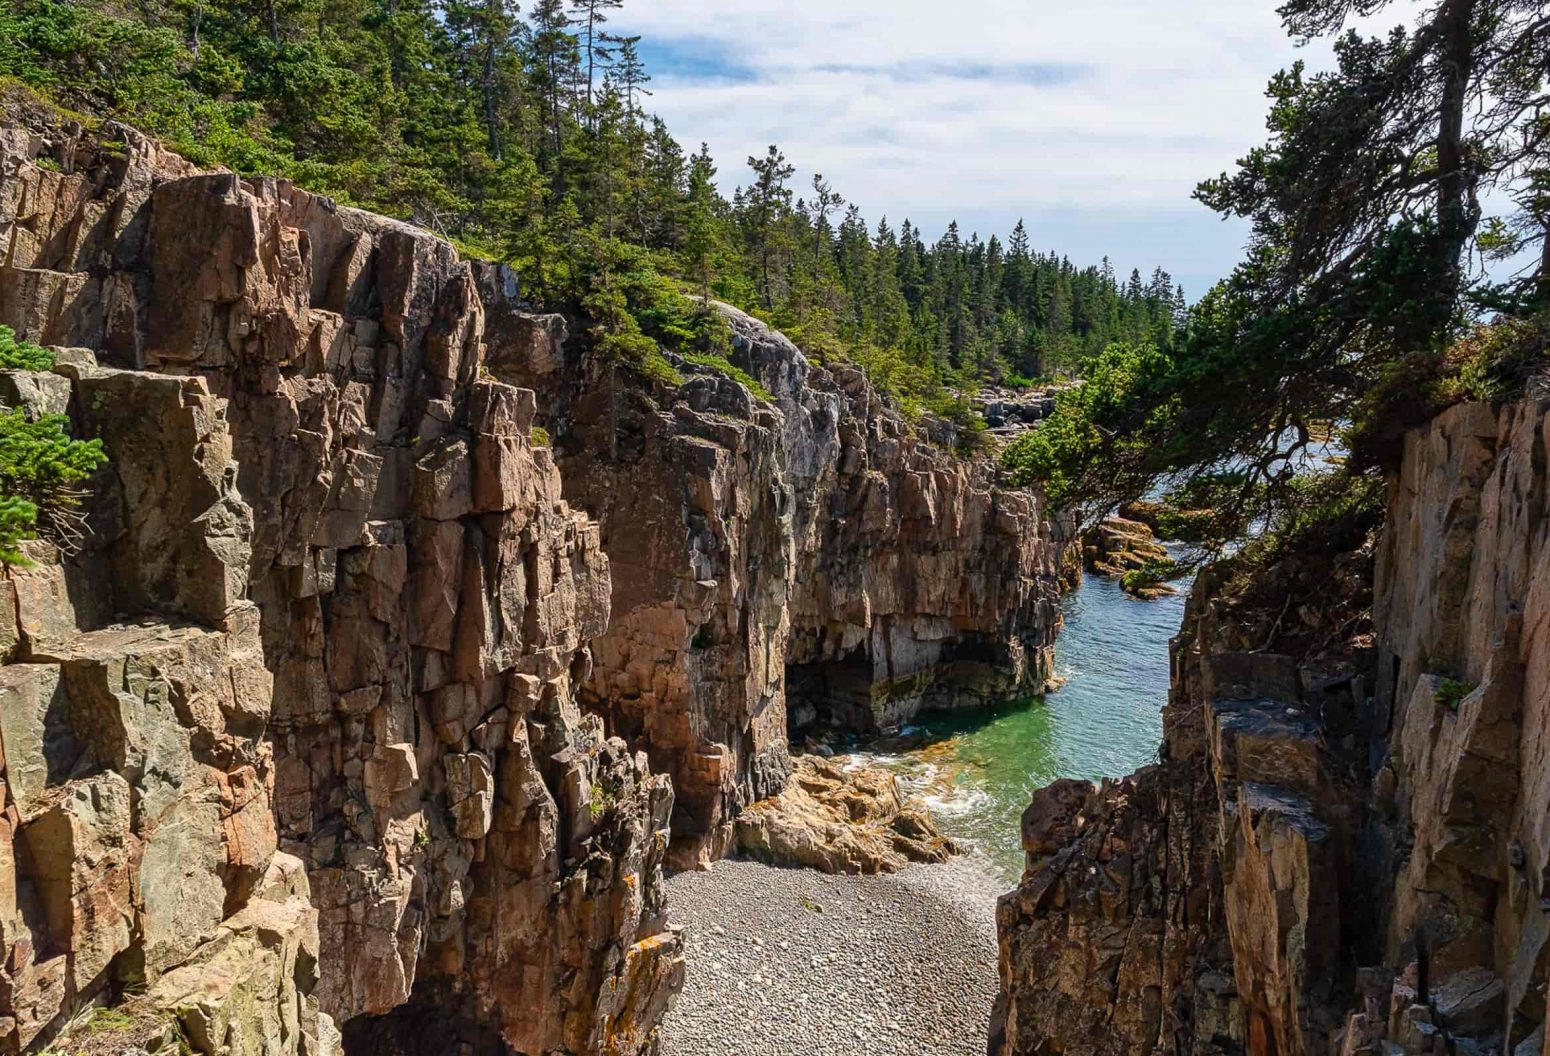 Maine rocky coastline with high cliffs and the ocean